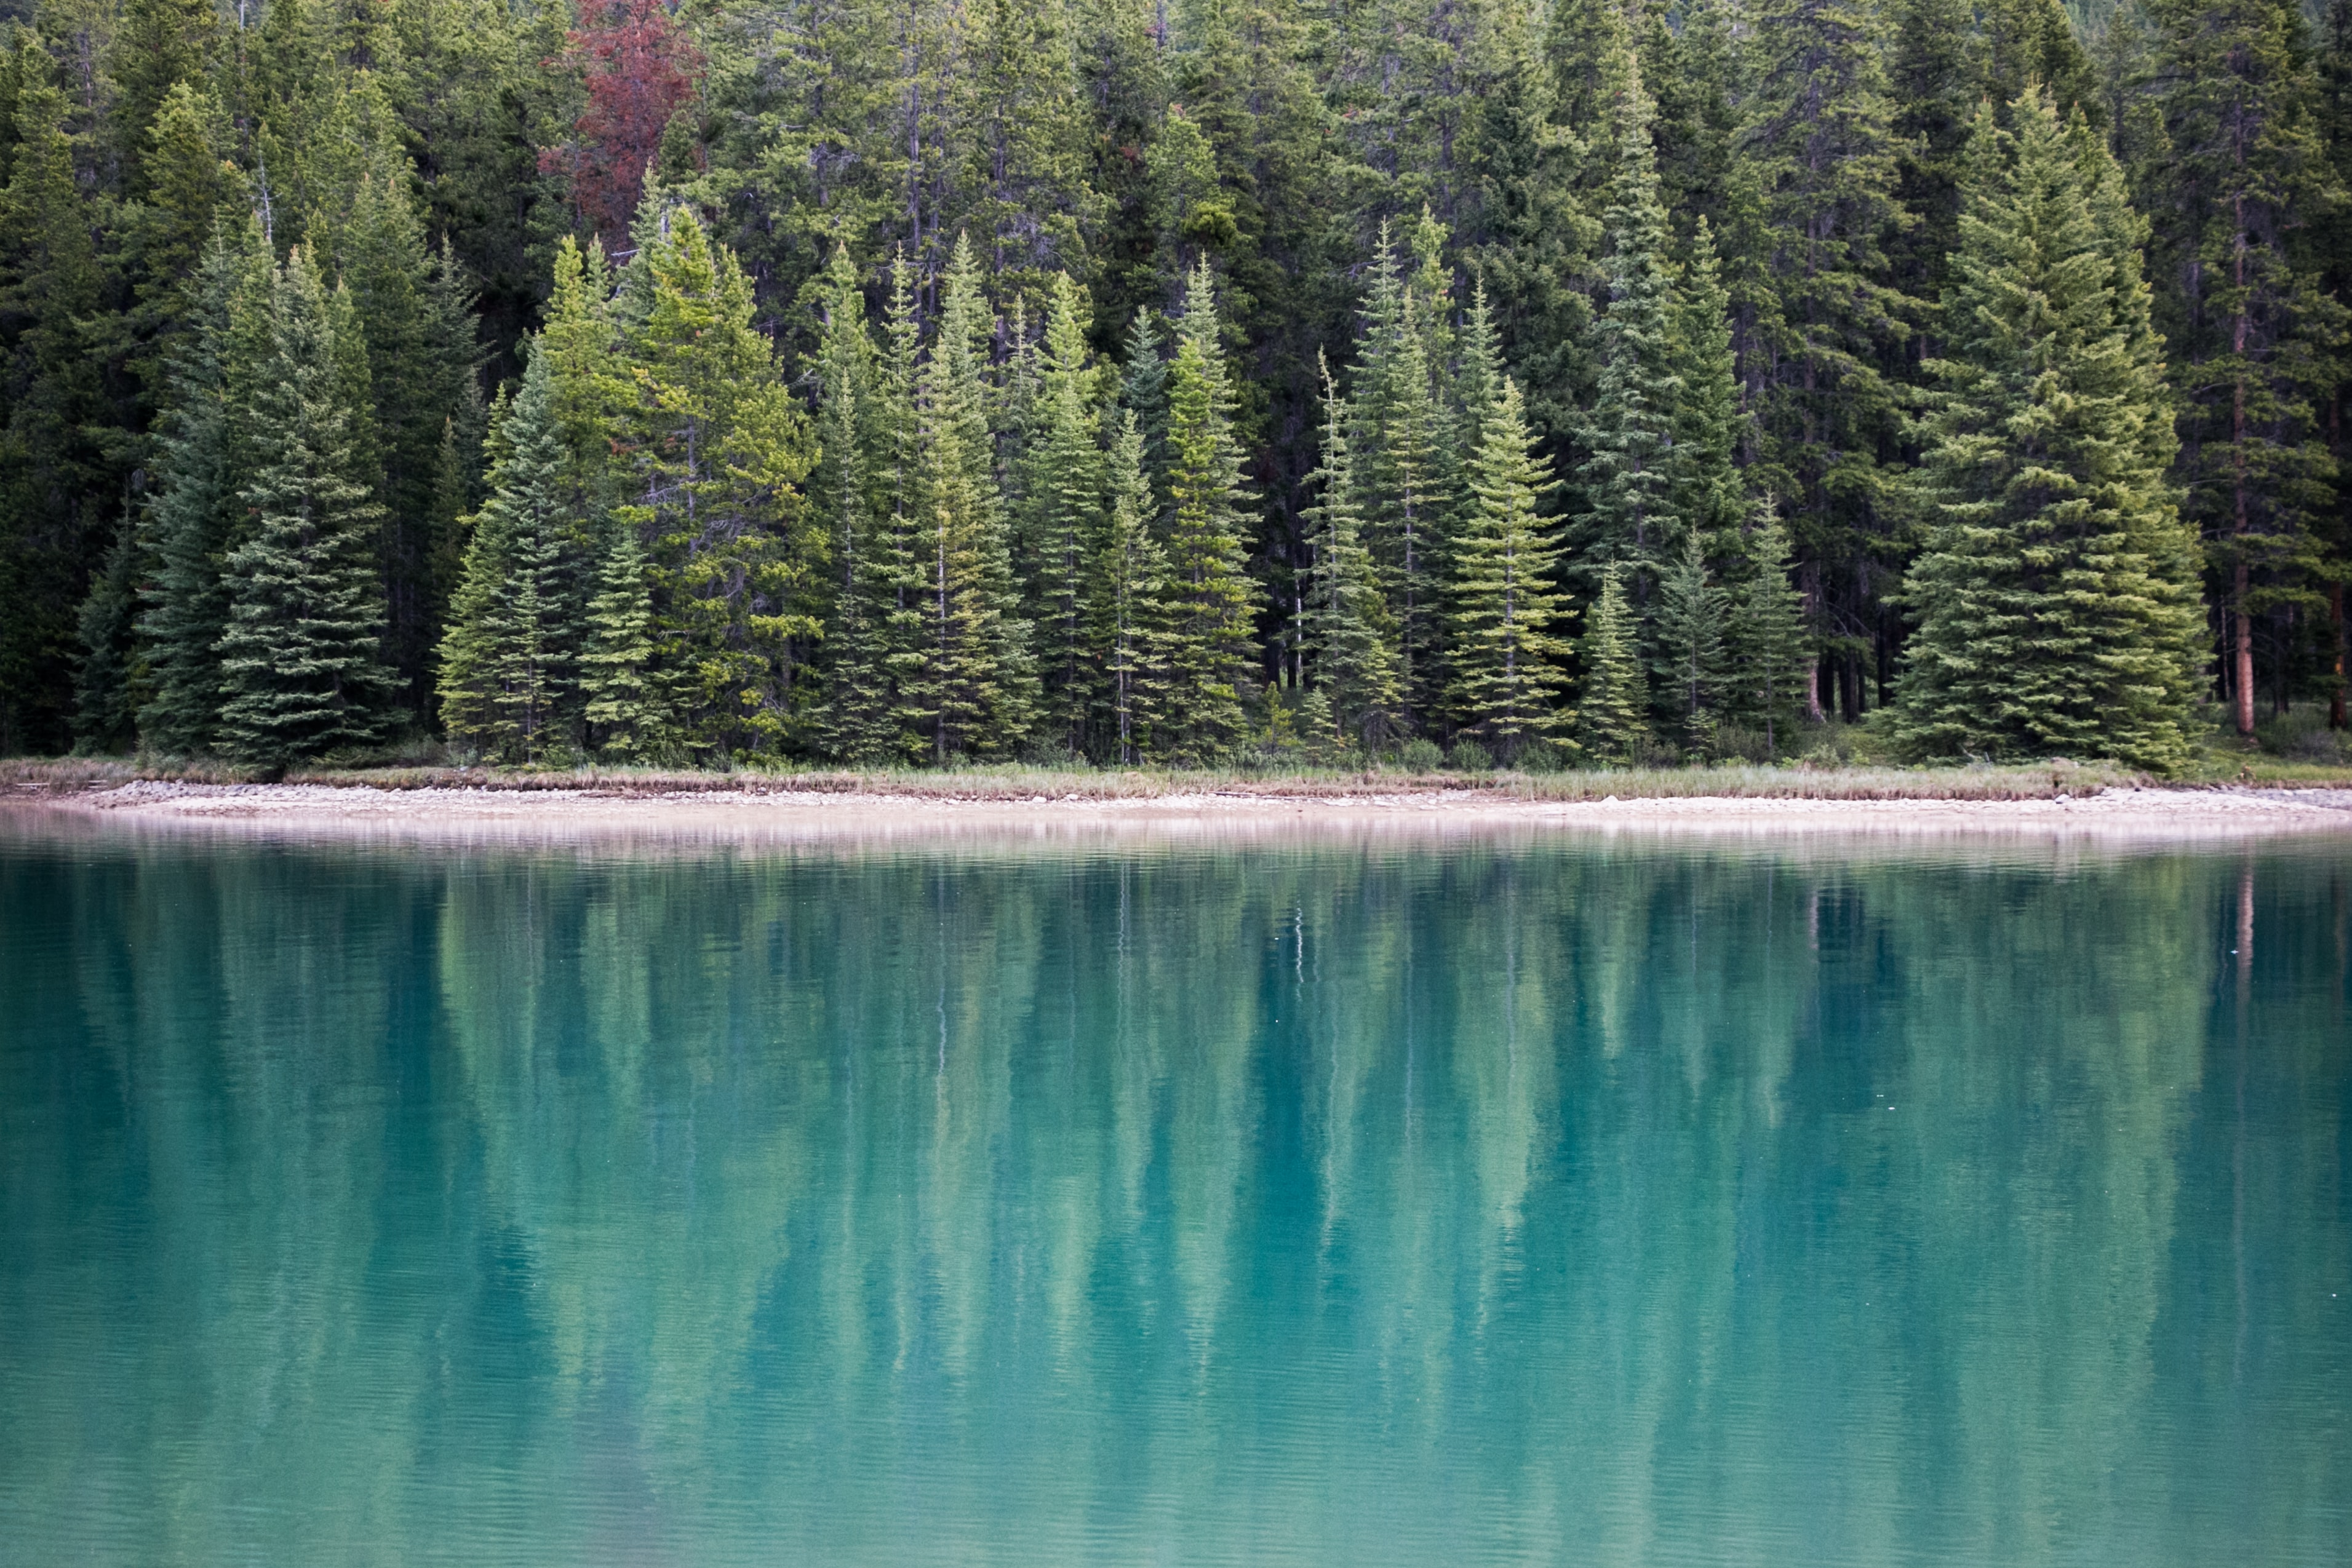 Evergreen trees reflected in the surface of a nearby lake